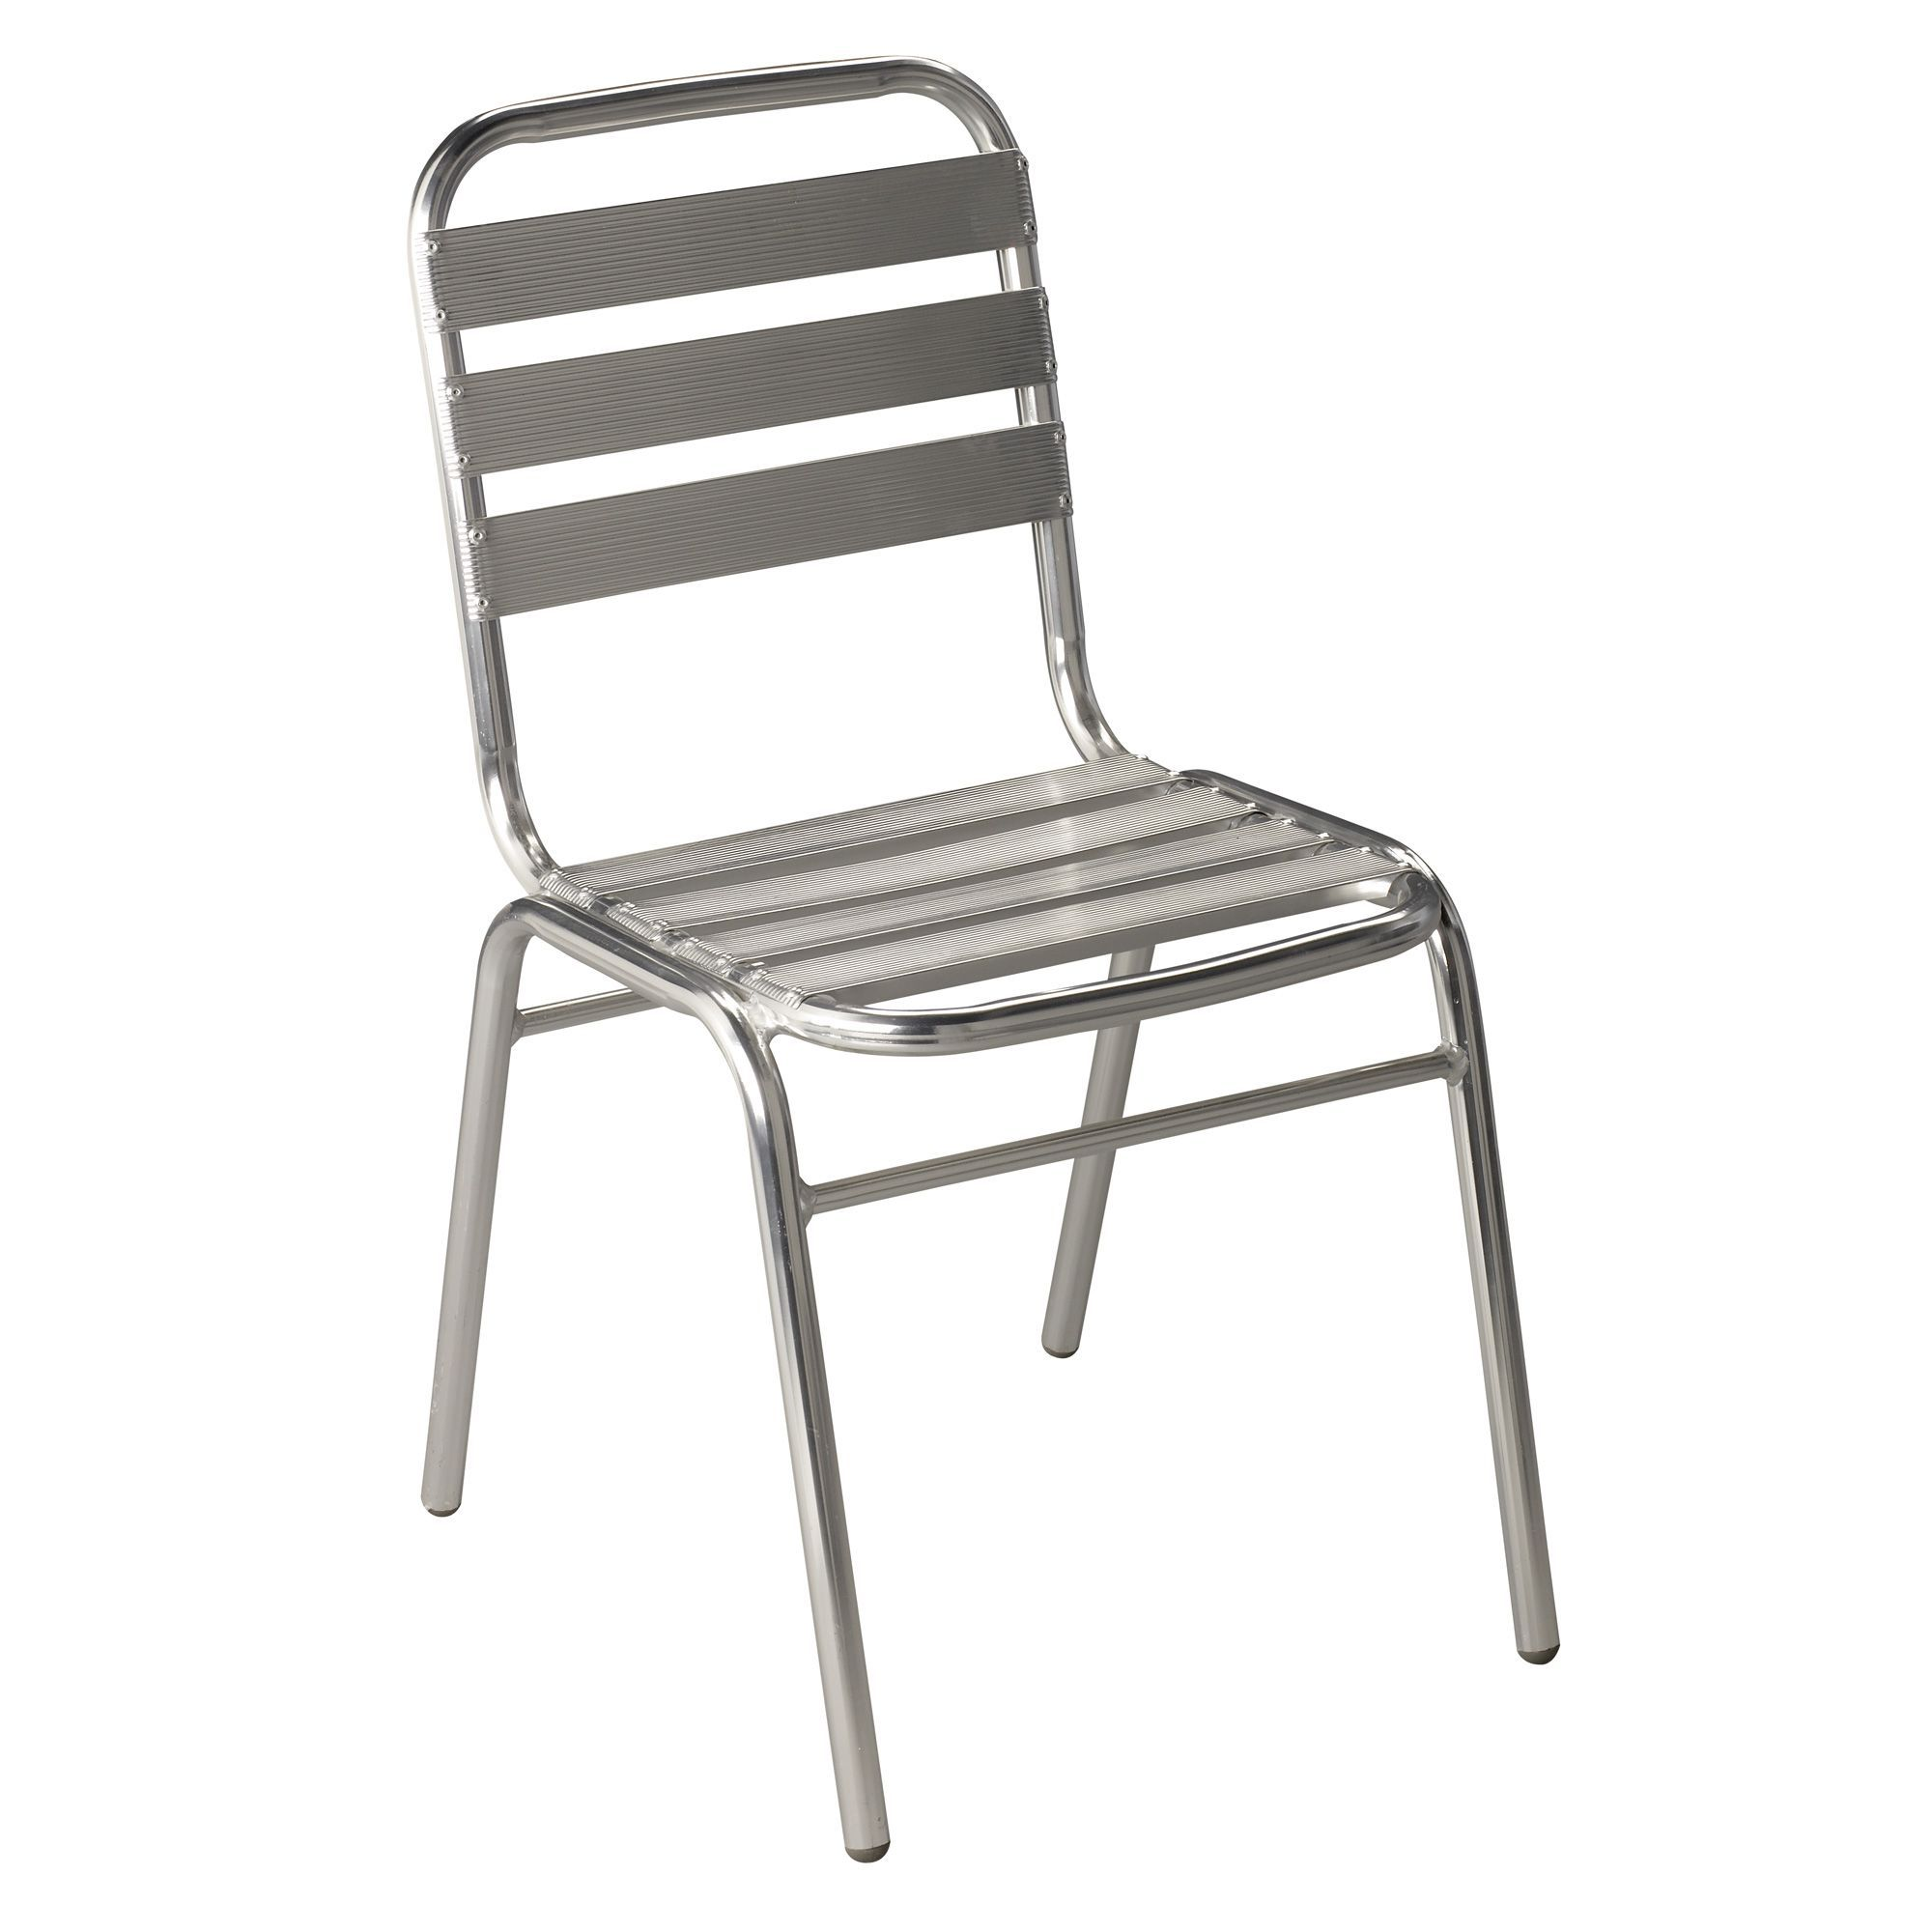 Chaise en aluminium techno chaises tables et chaises for Table chaise alinea